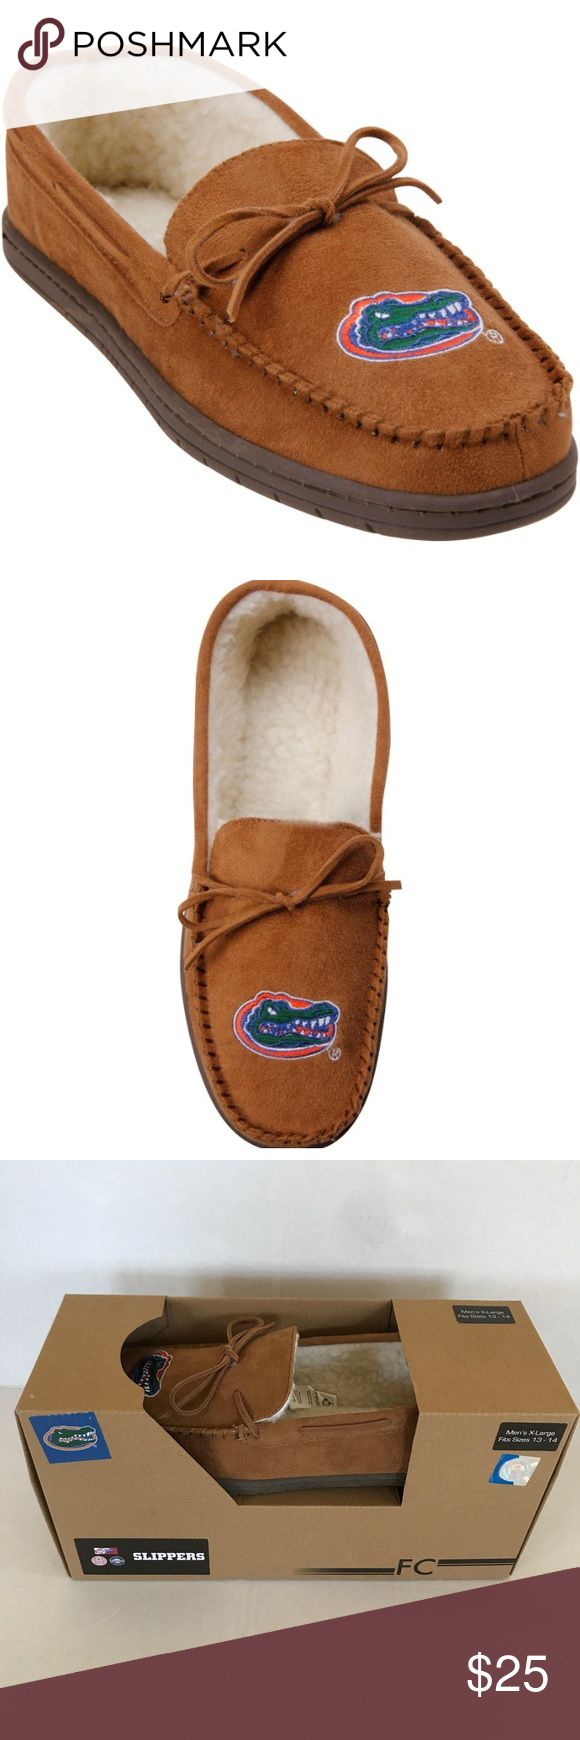 Florida Gators UF Men's Moccasin Slippers NIB new in box Florida Gators UF Men's Moccasin Slippers  Size XL (13-14)  Check out my closet for bundles! Shoes Loafers & Slip-Ons